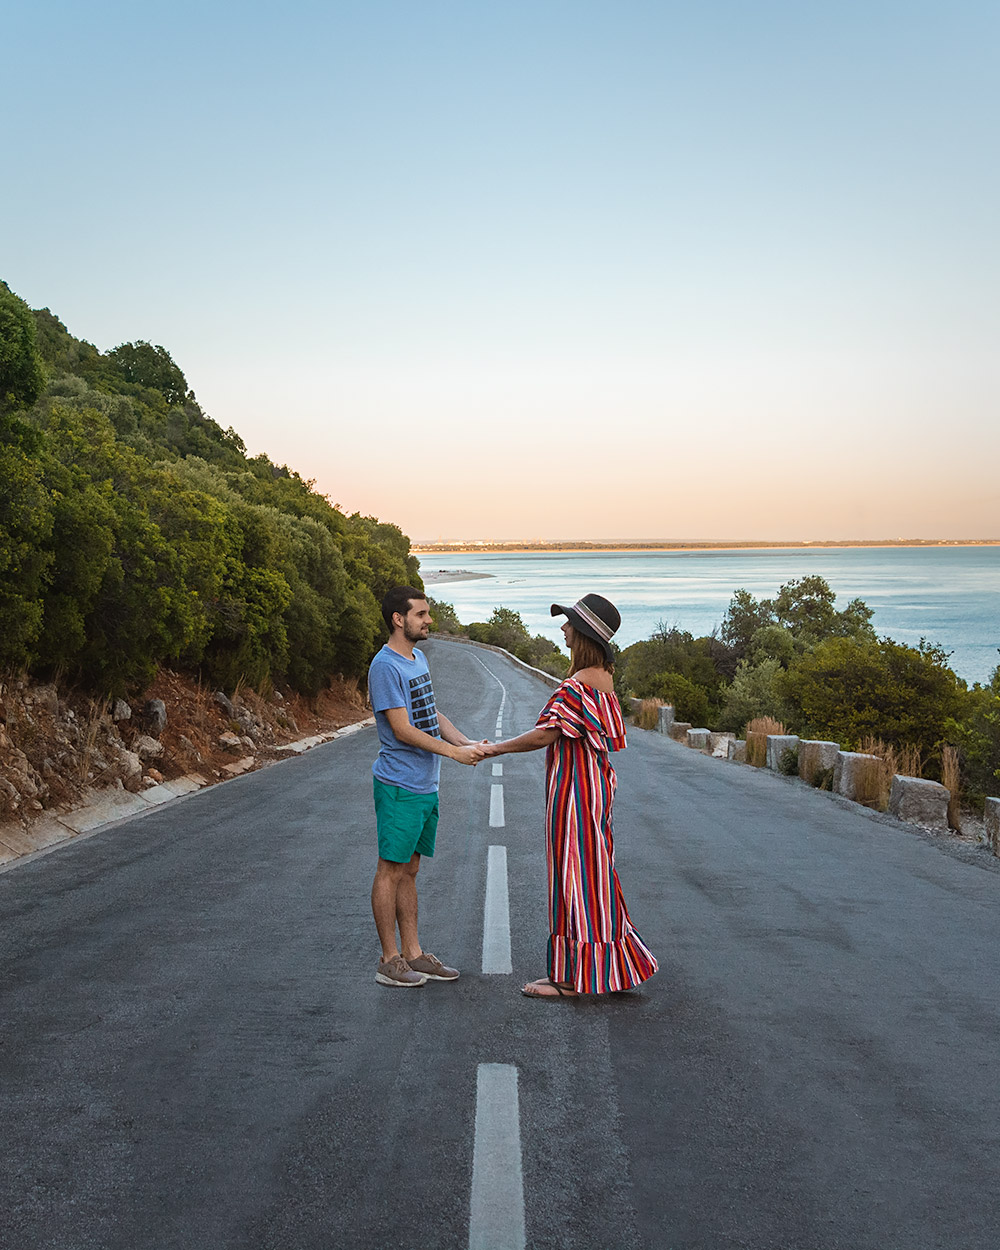 Maria and Rui in the middle of an empty road by the beautiful Arrabida Park in Portugal